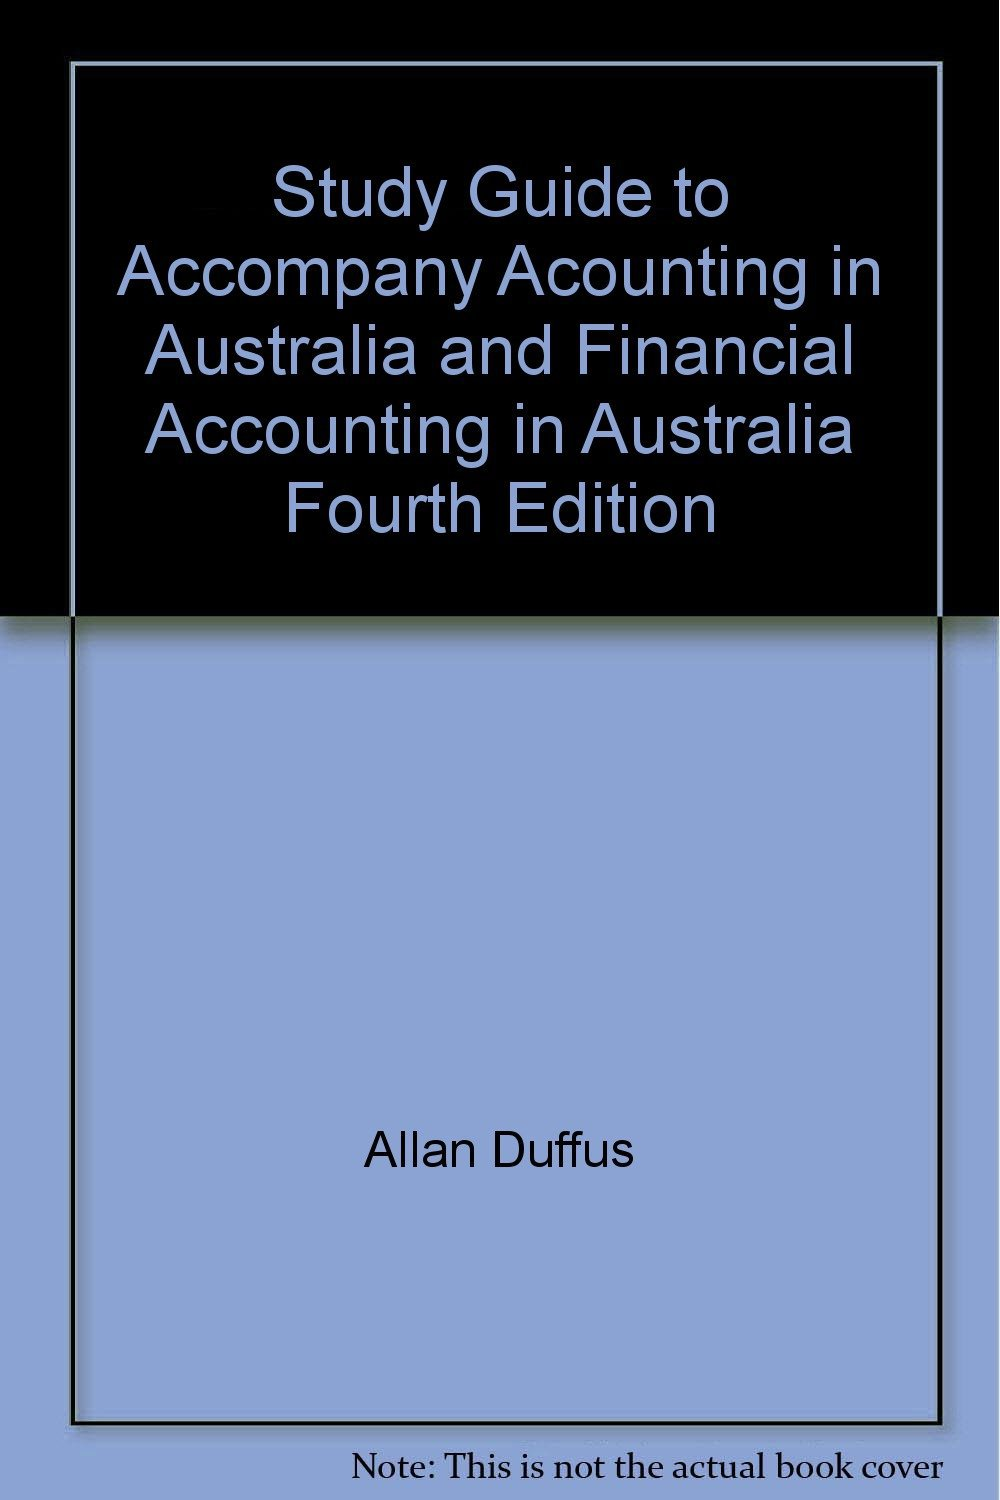 Accounting in Australia 4e/Financial Accounting in Australia 4e Study Guide